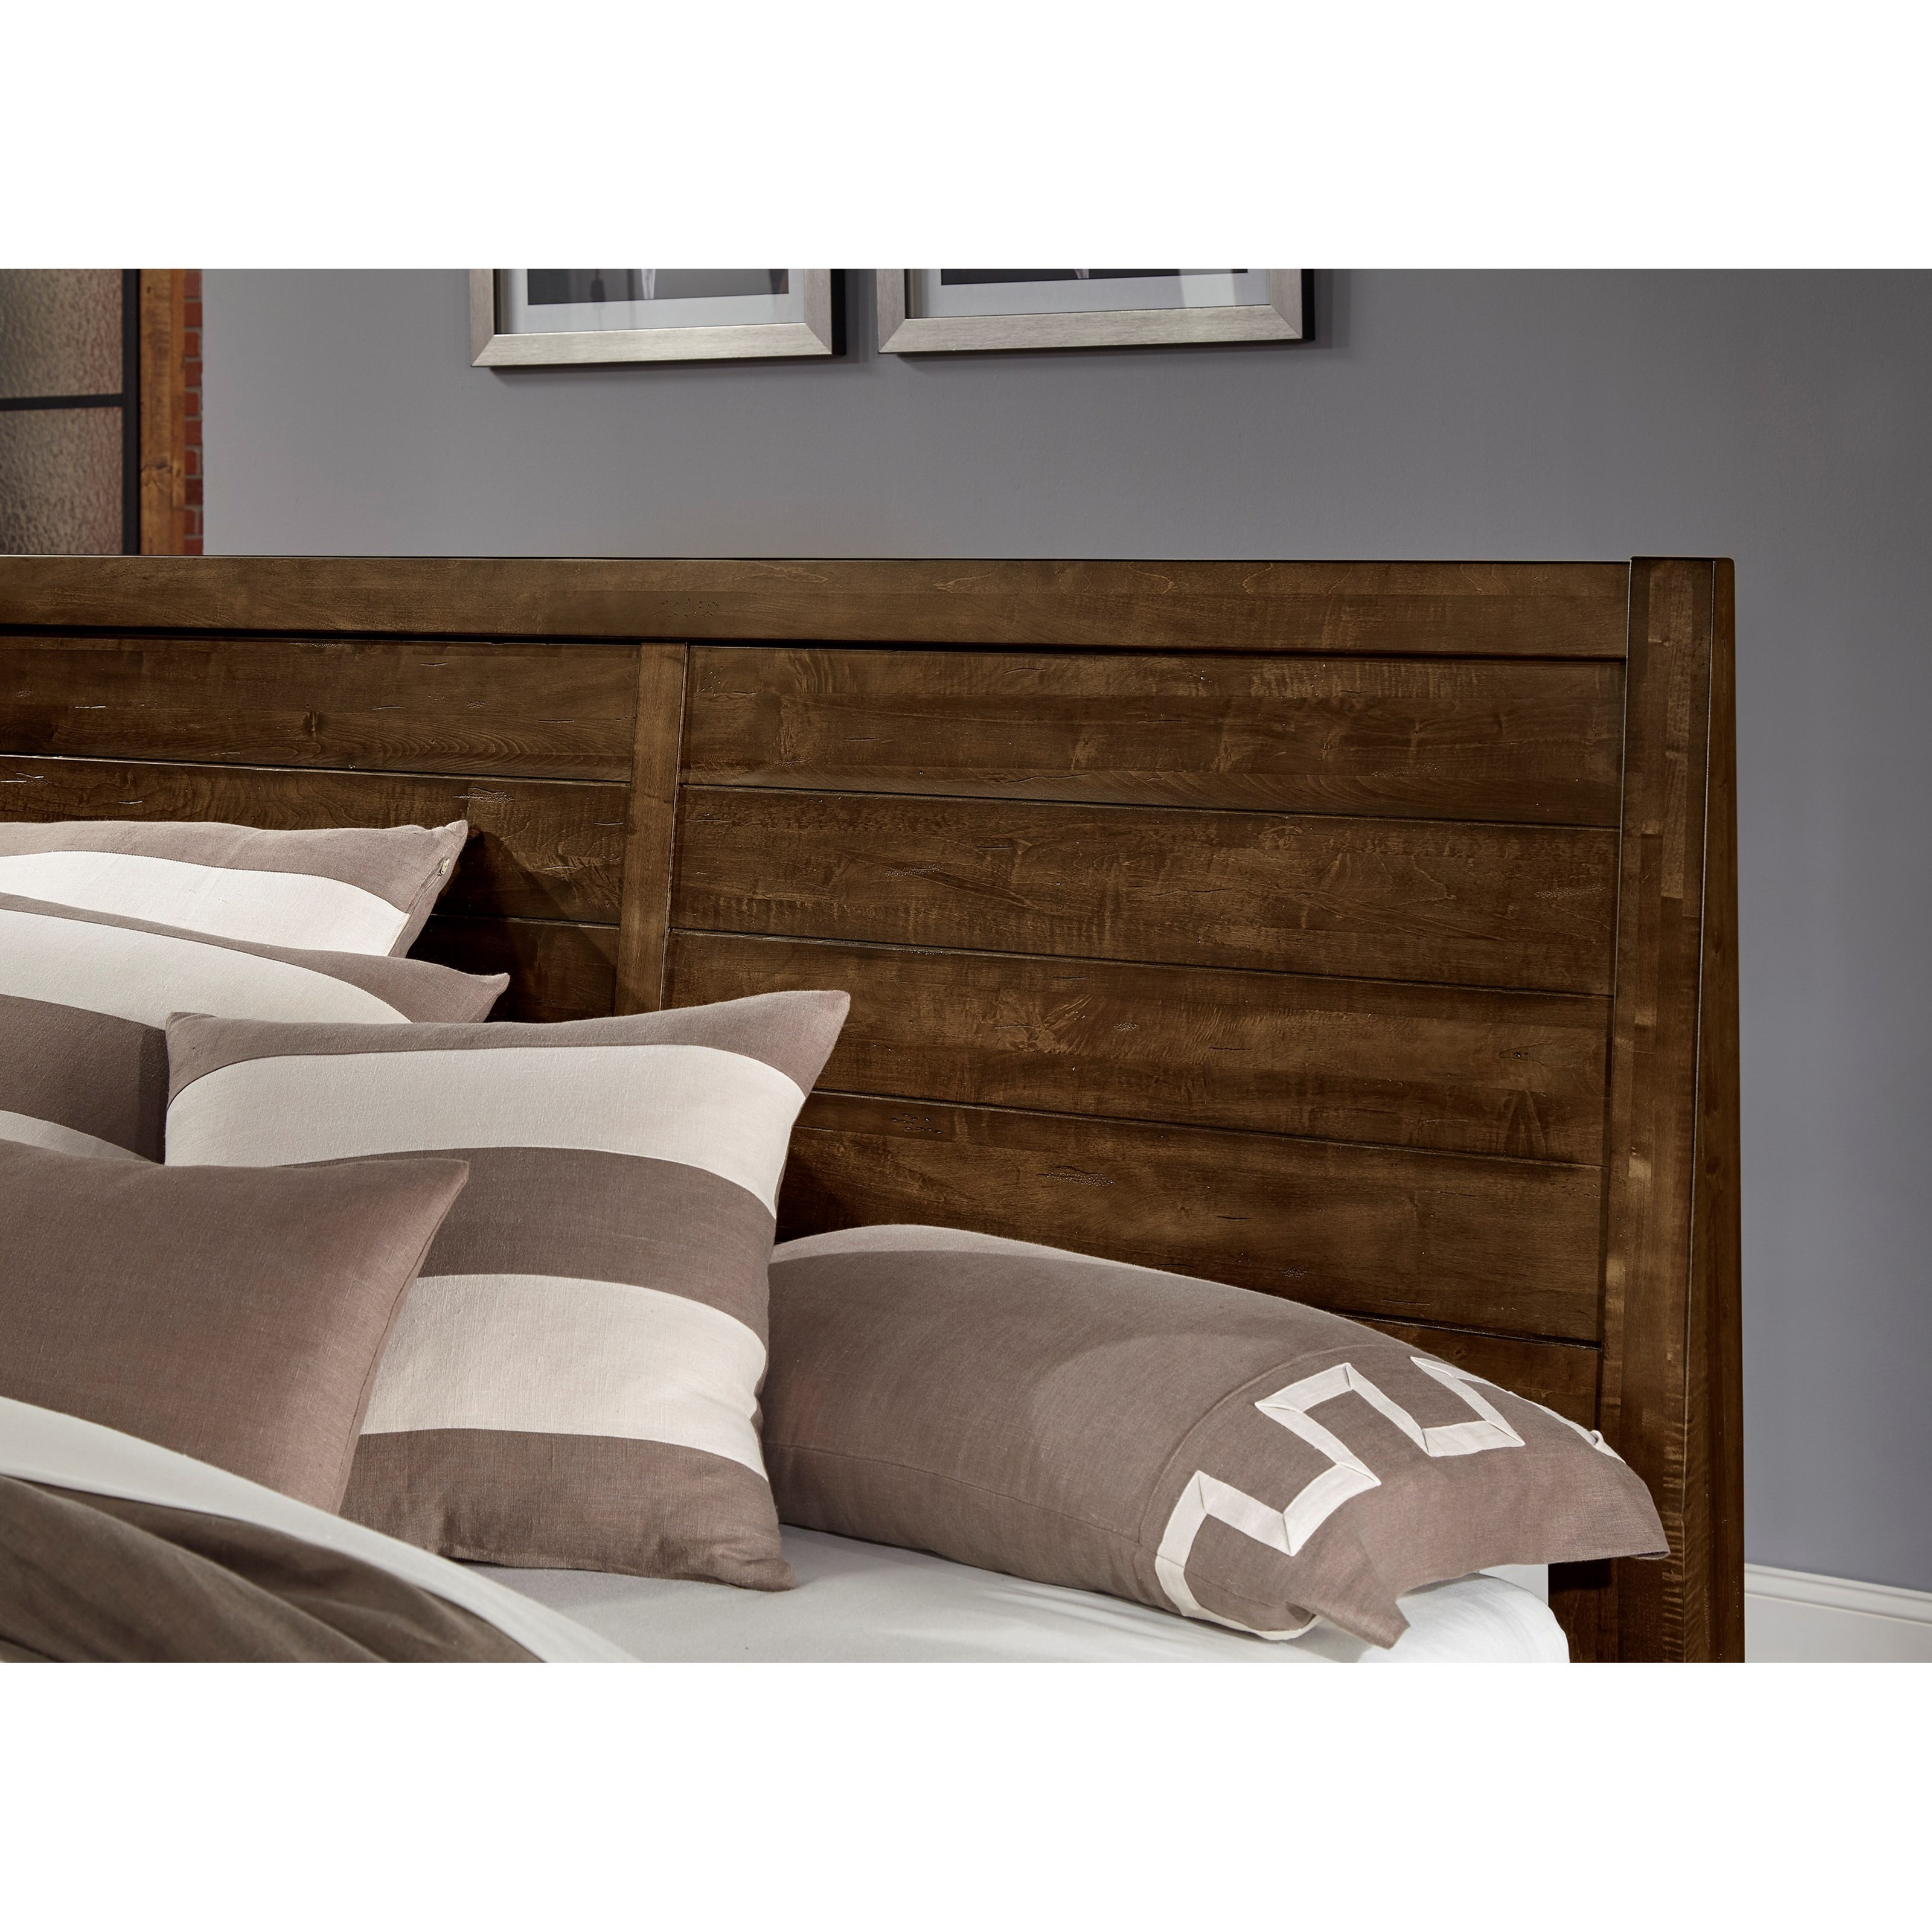 Sedgwick Queen Headboard by Artisan & Post at Zak's Home